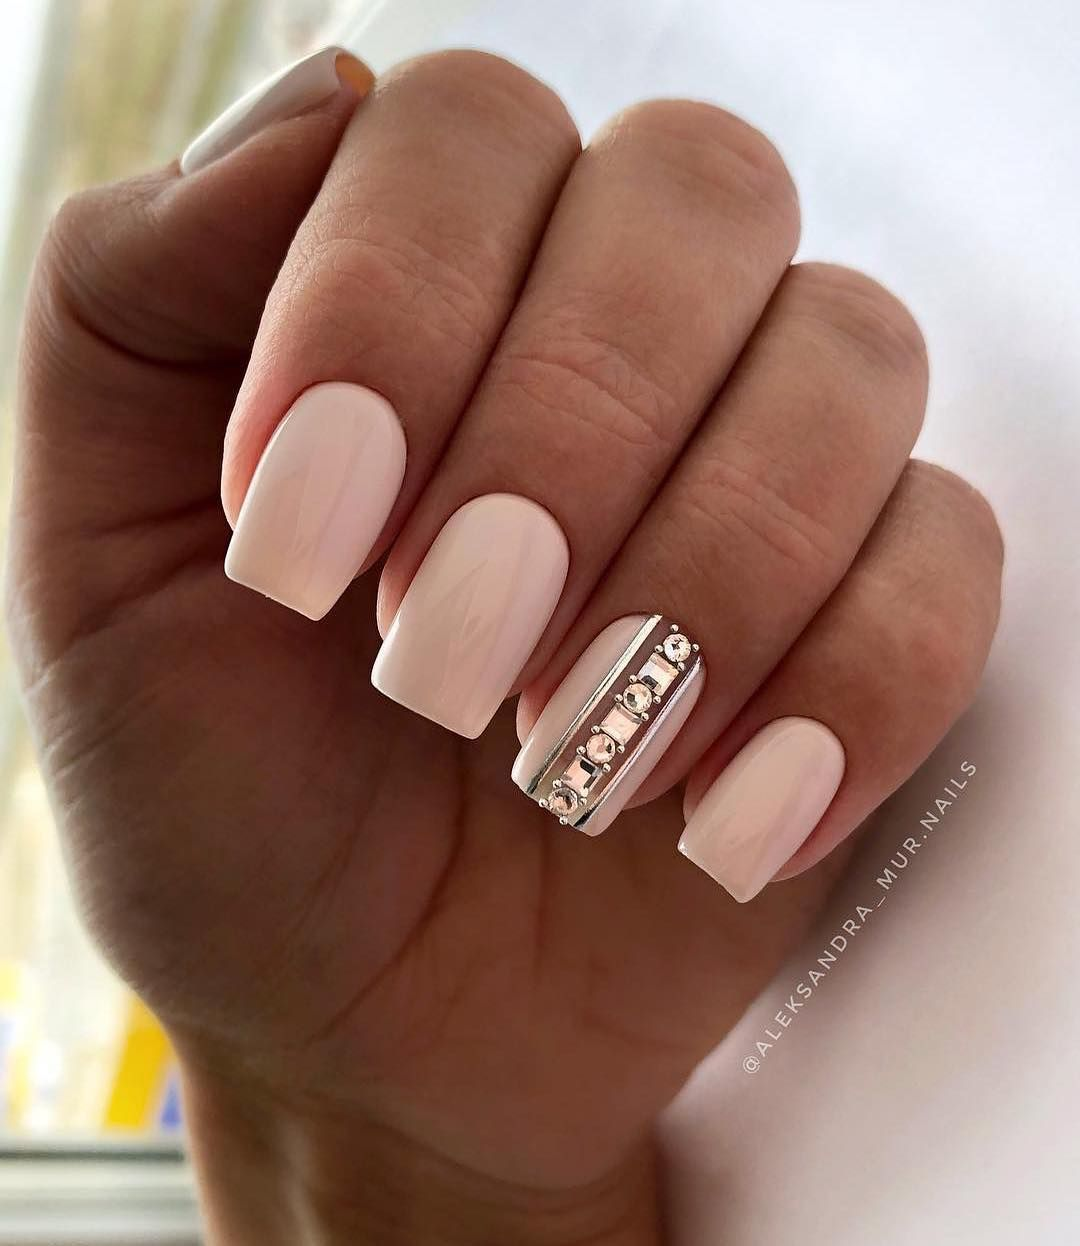 100 Spring Light Color Square Acrylic Nails Designs Square Acrylic Nails Spring Nails White Nails Pink Square Acrylic Nails Short Acrylic Nails Pink Nails